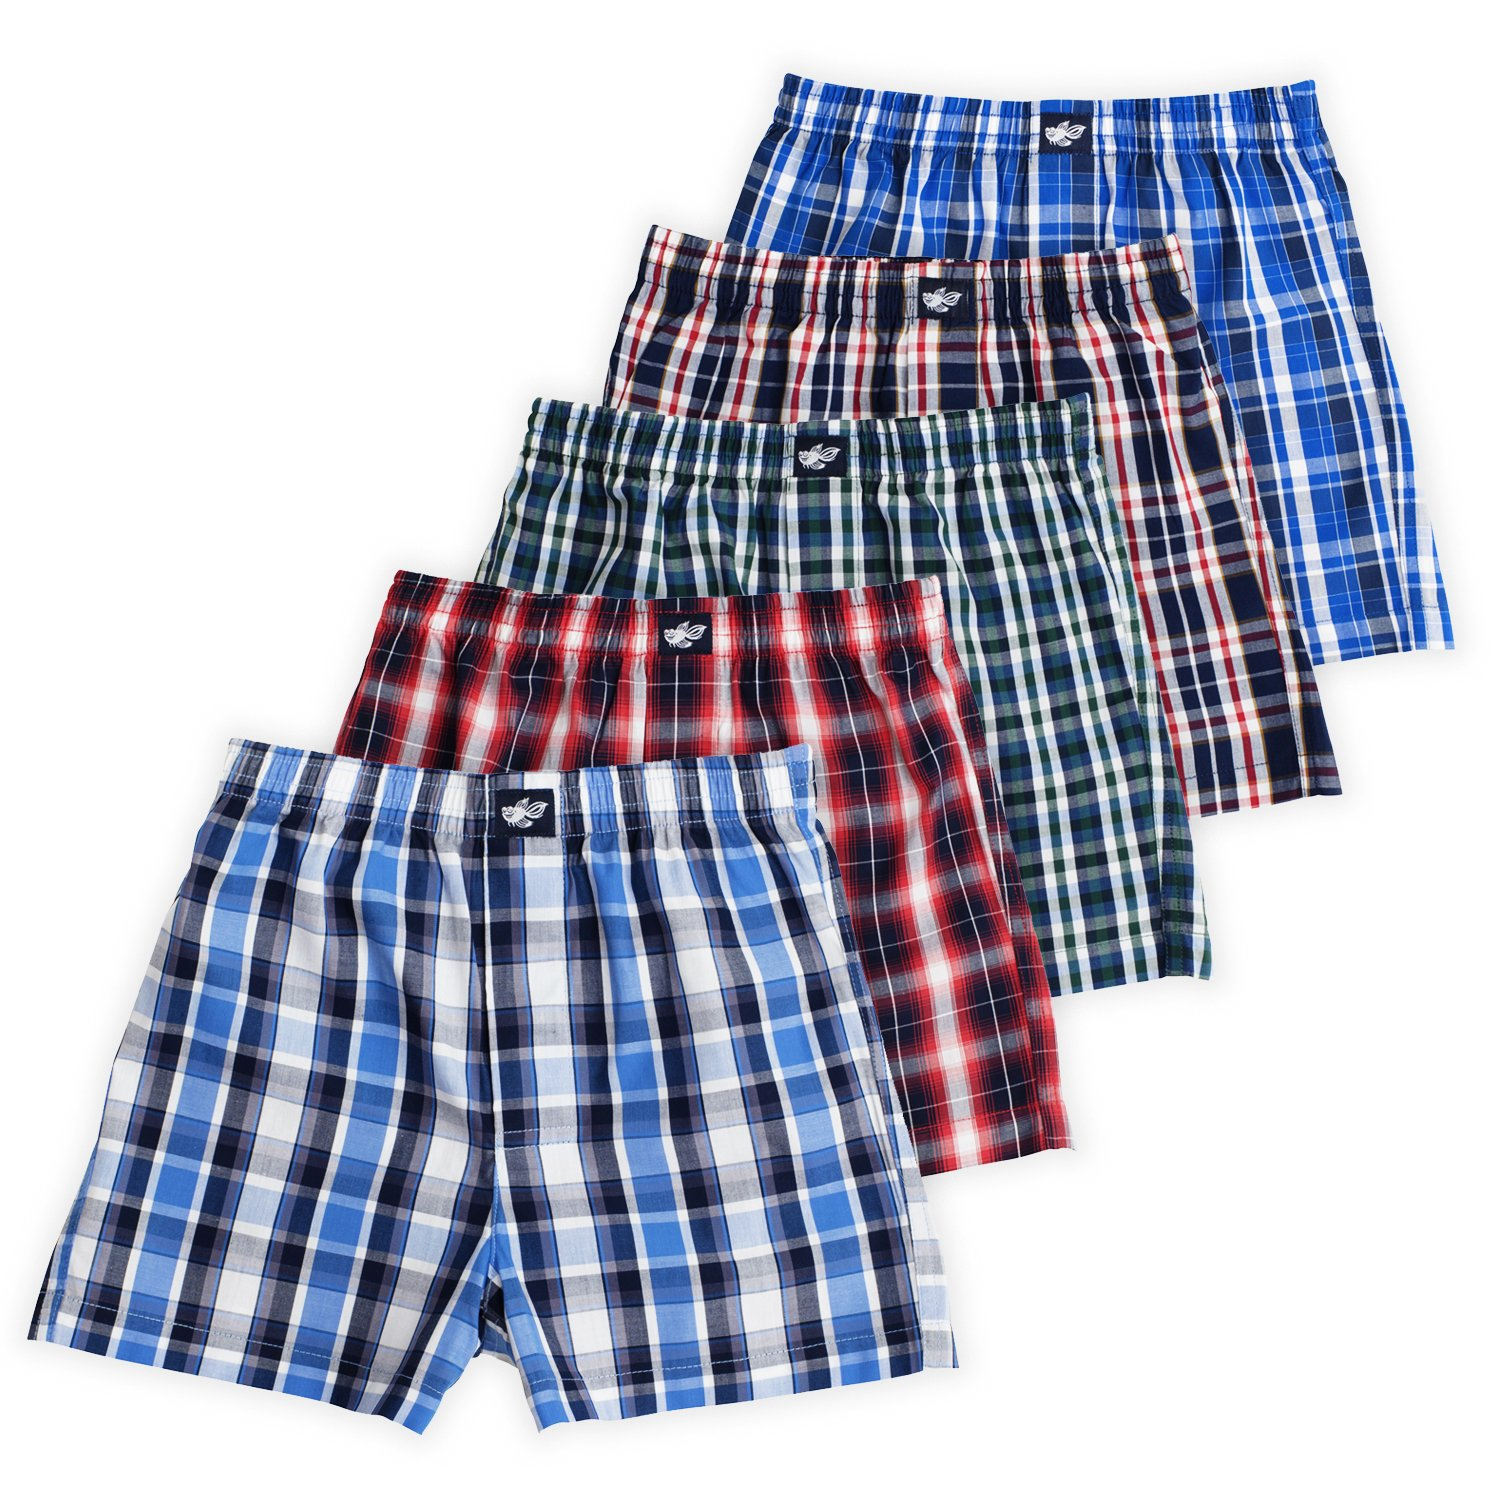 Lucky & Me Ryan Boys Boxer Shorts, 5-Pack, 100% Woven Combed Cotton, Encased Waistband, Plaid Grande, 7/8